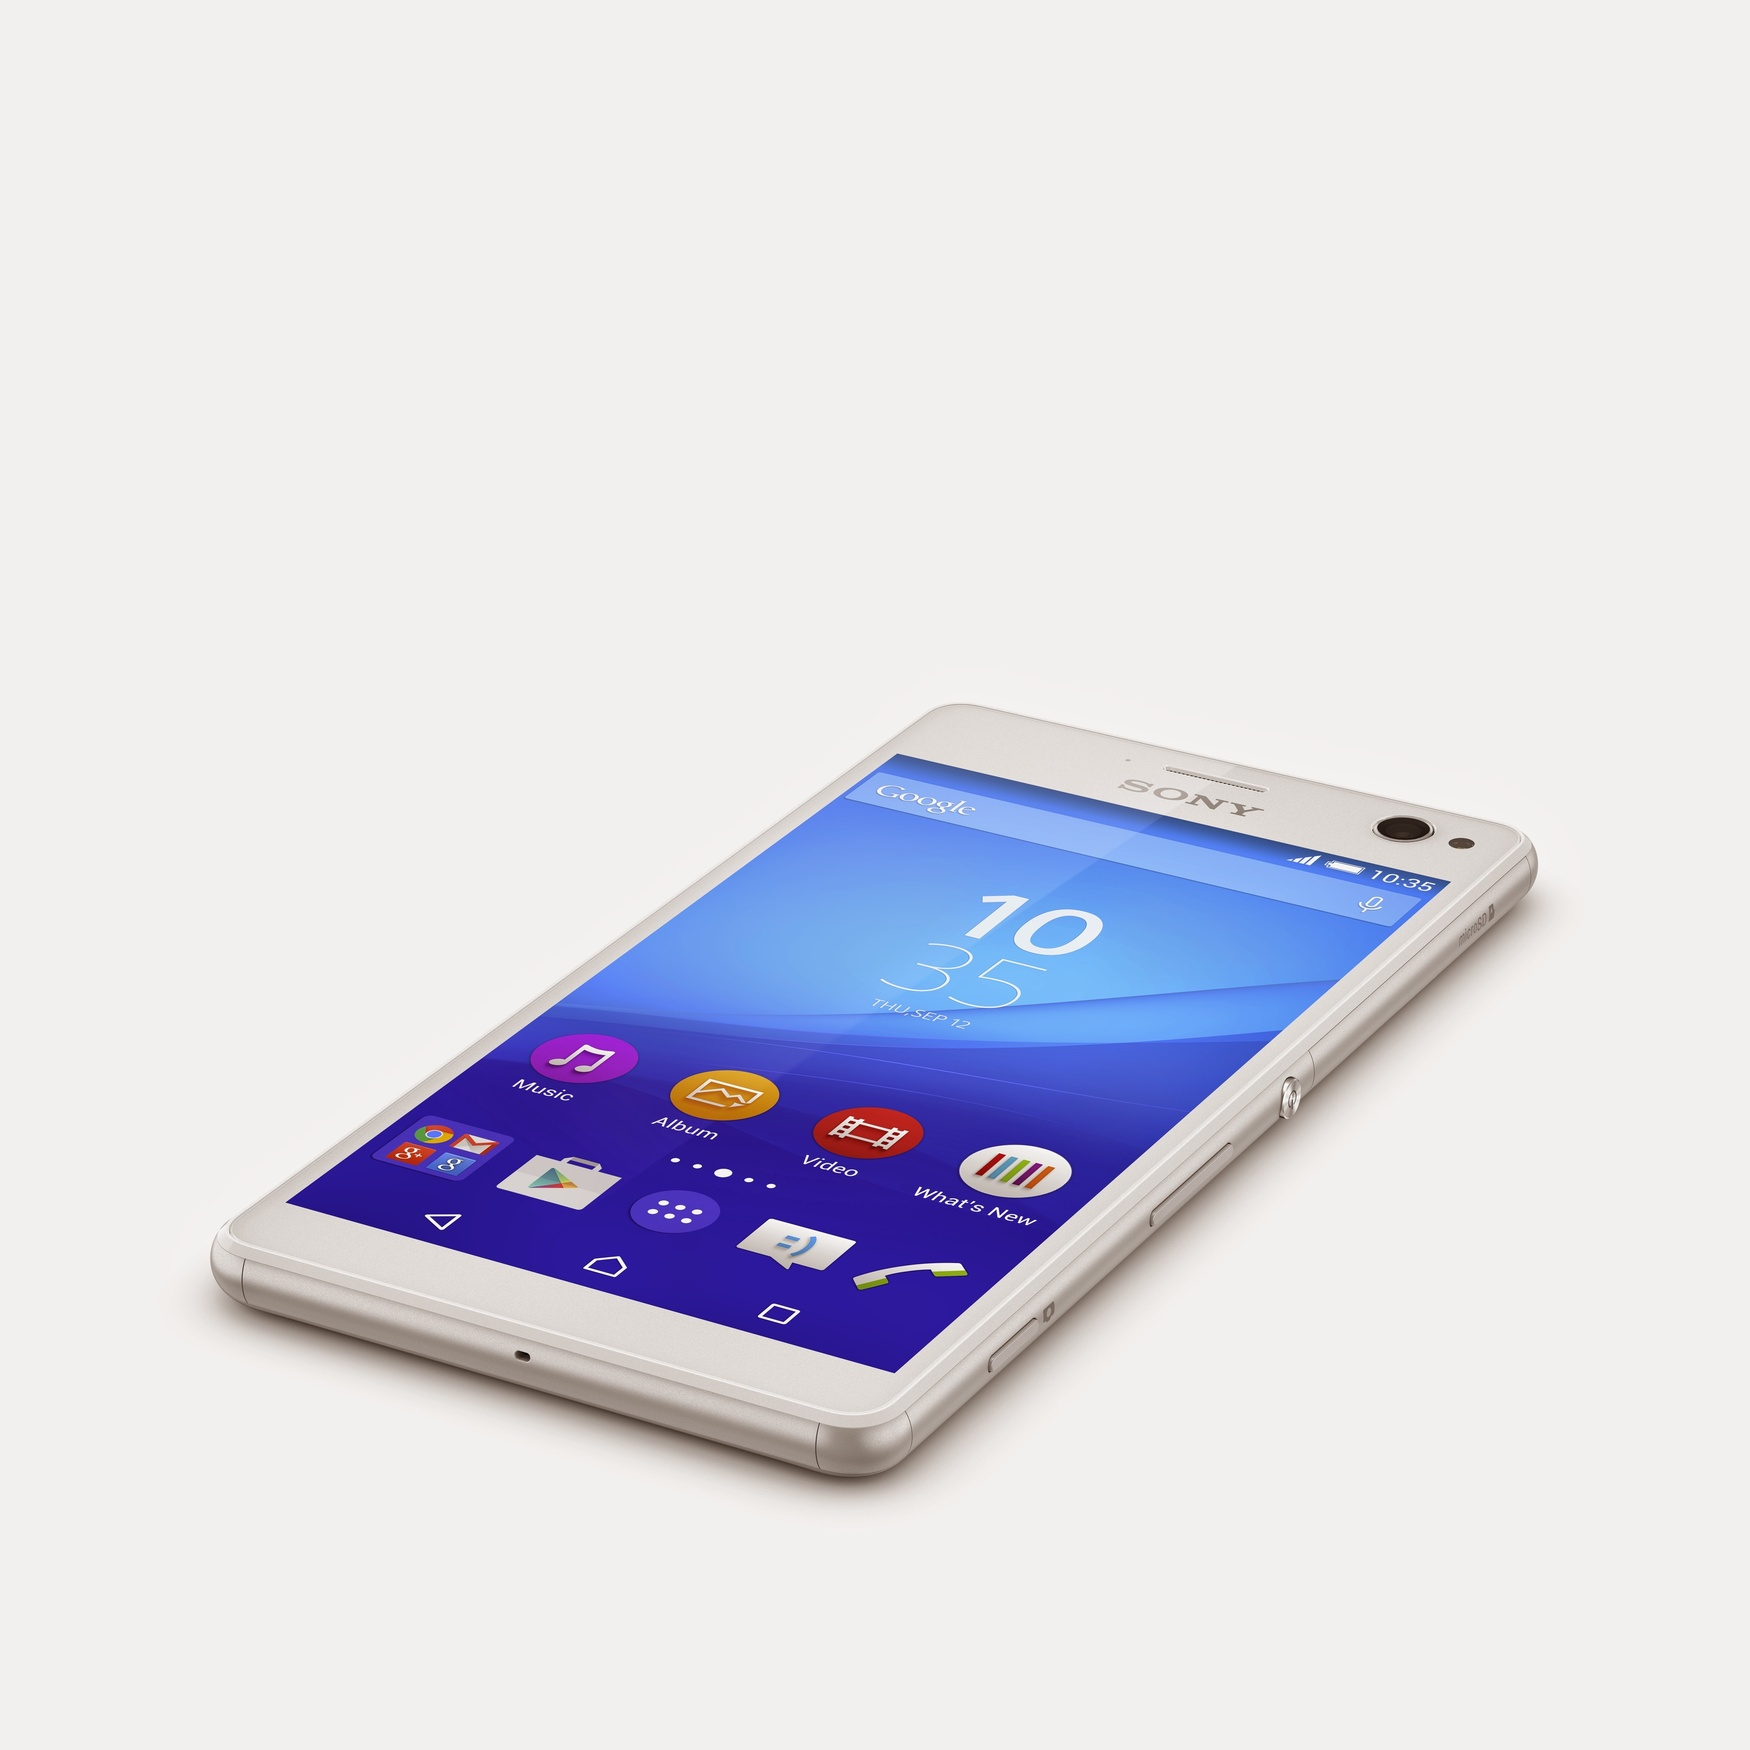 Sony-Xperia-C4-images (2)